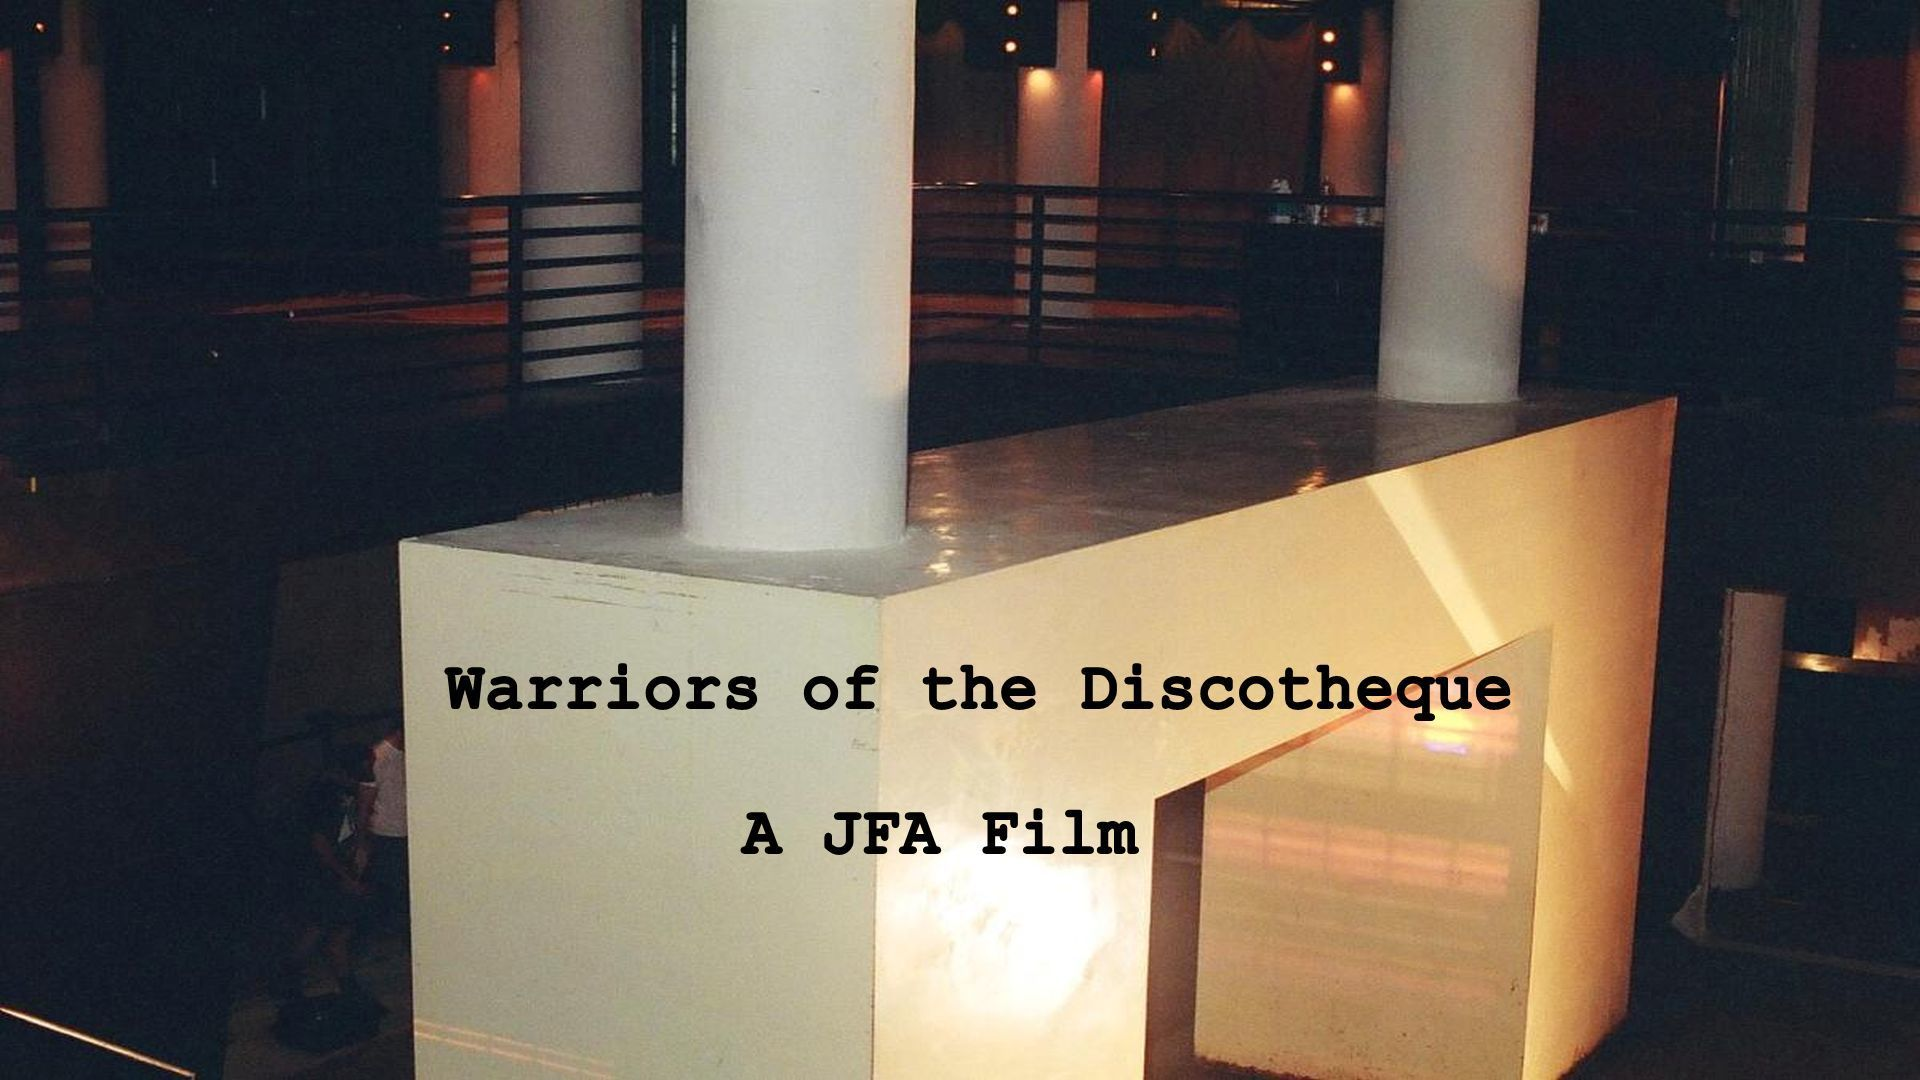 Sex, Drugs, Design: Warriors of the Discotheque